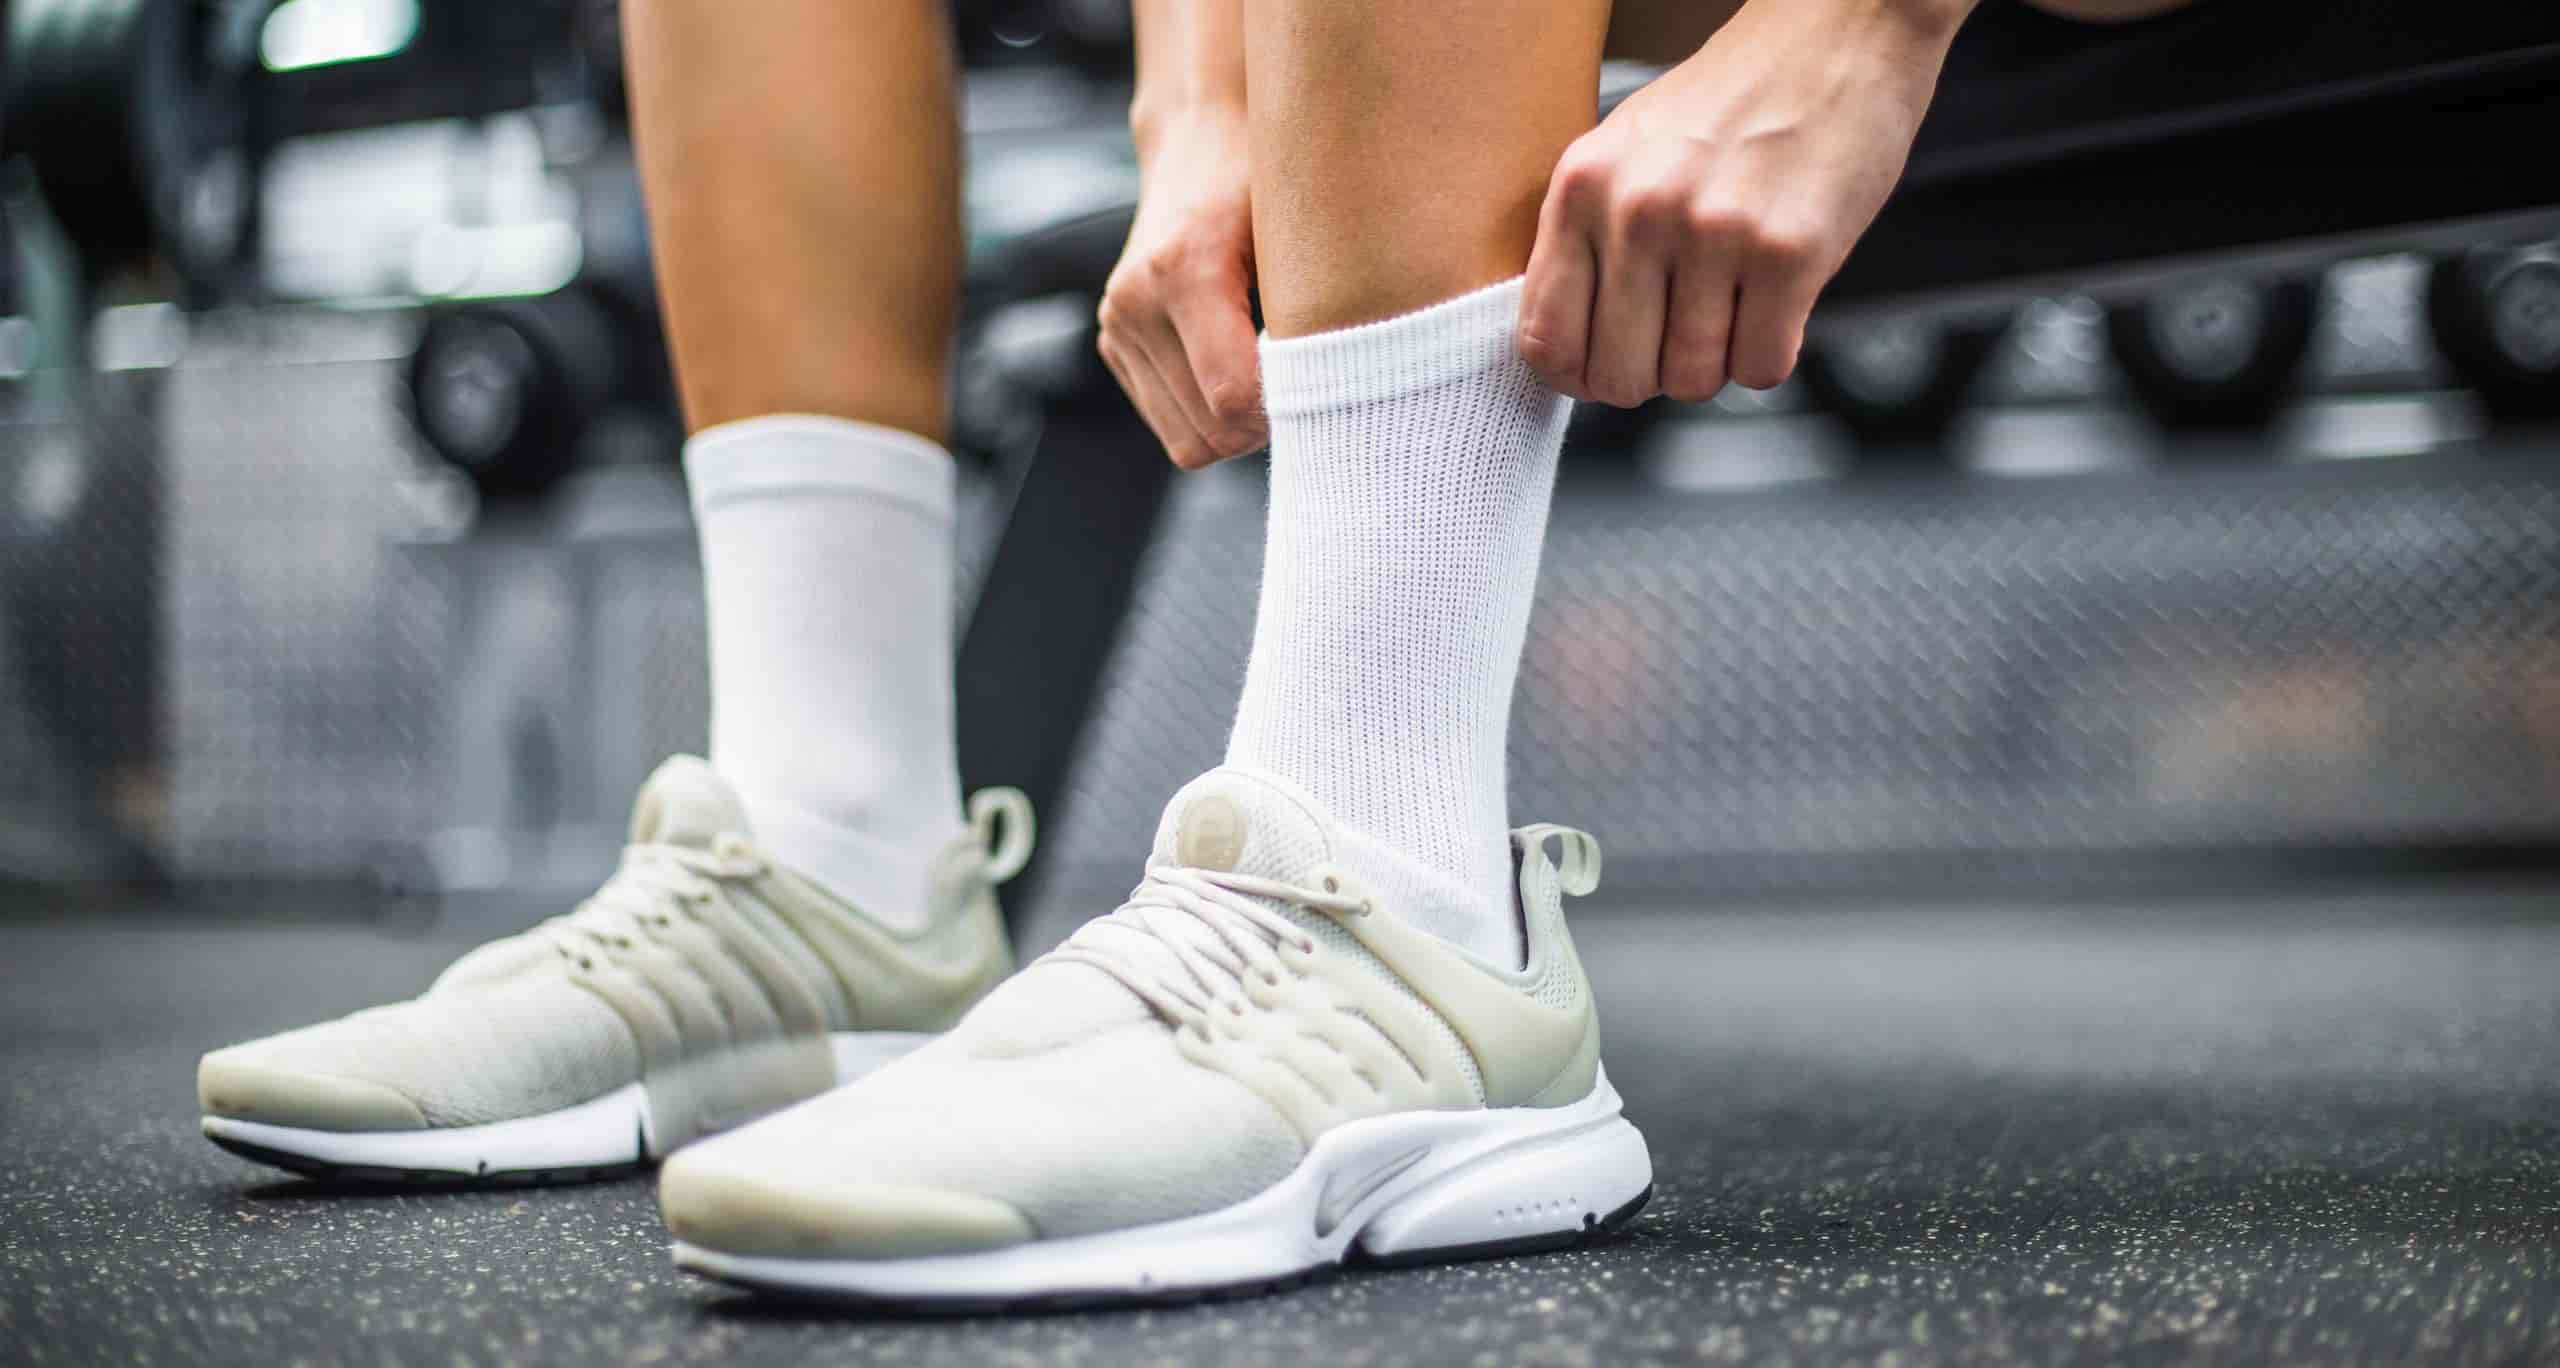 How Do Compression Socks Benefit Those With Diabetes